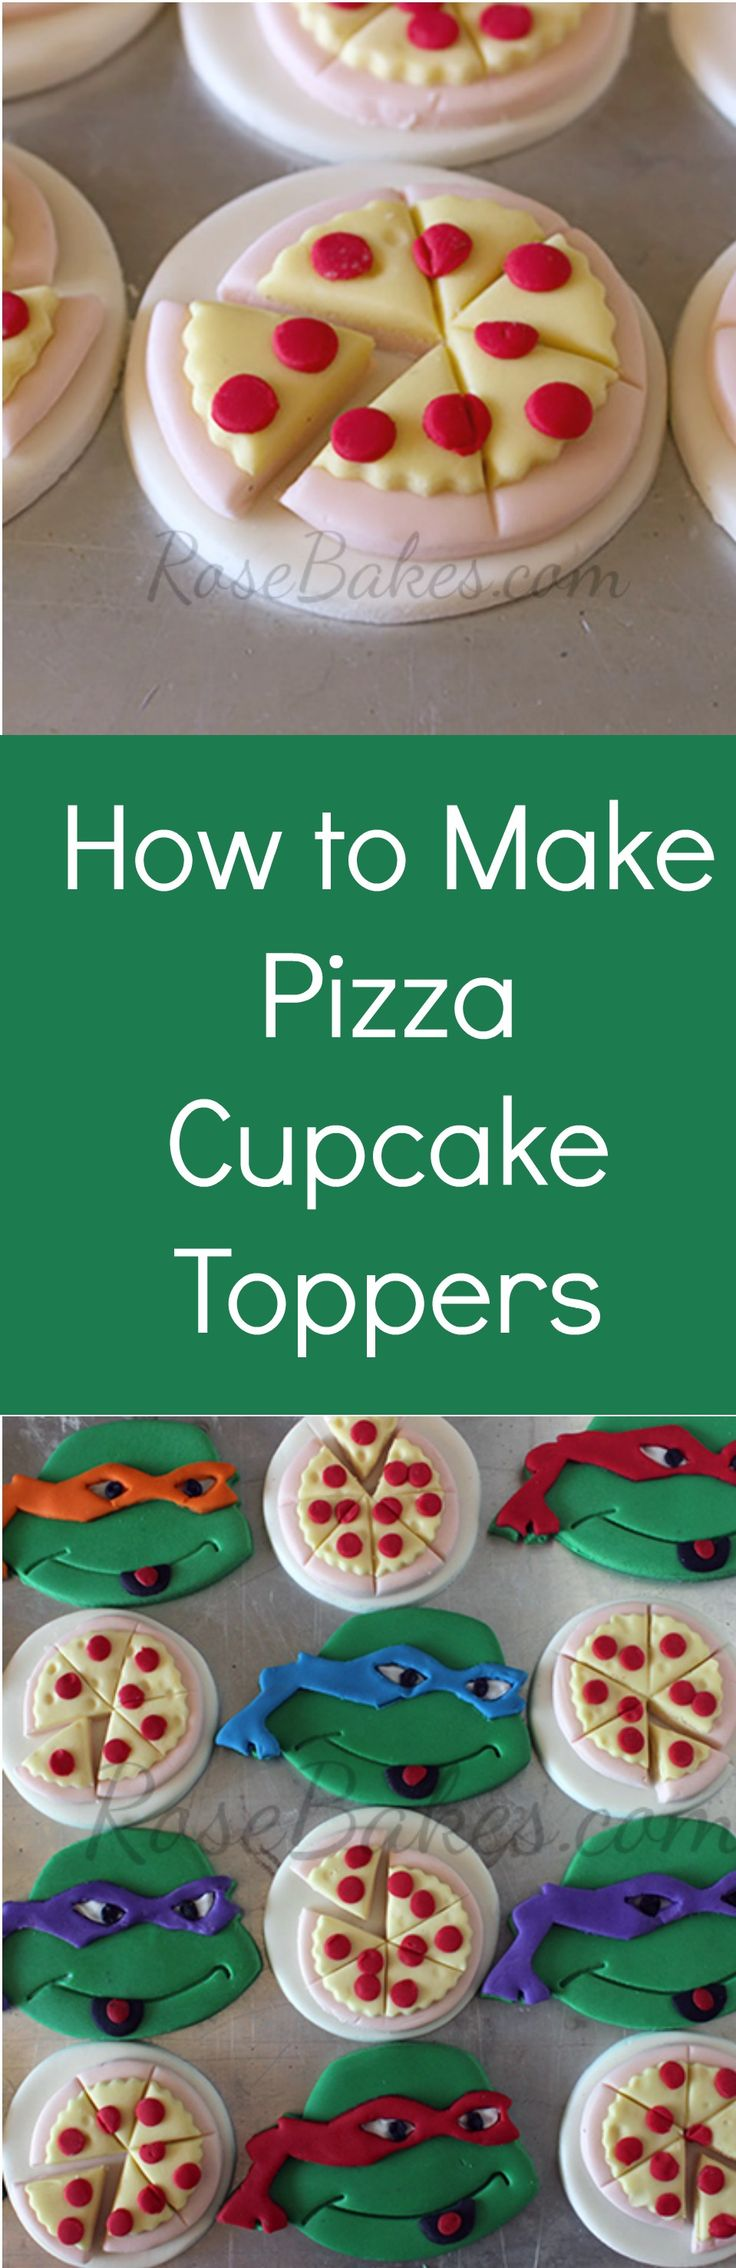 How to Make Teenage Mutant Ninja Turtles Pizza Cupcake Toppers #TMNT #Pizza